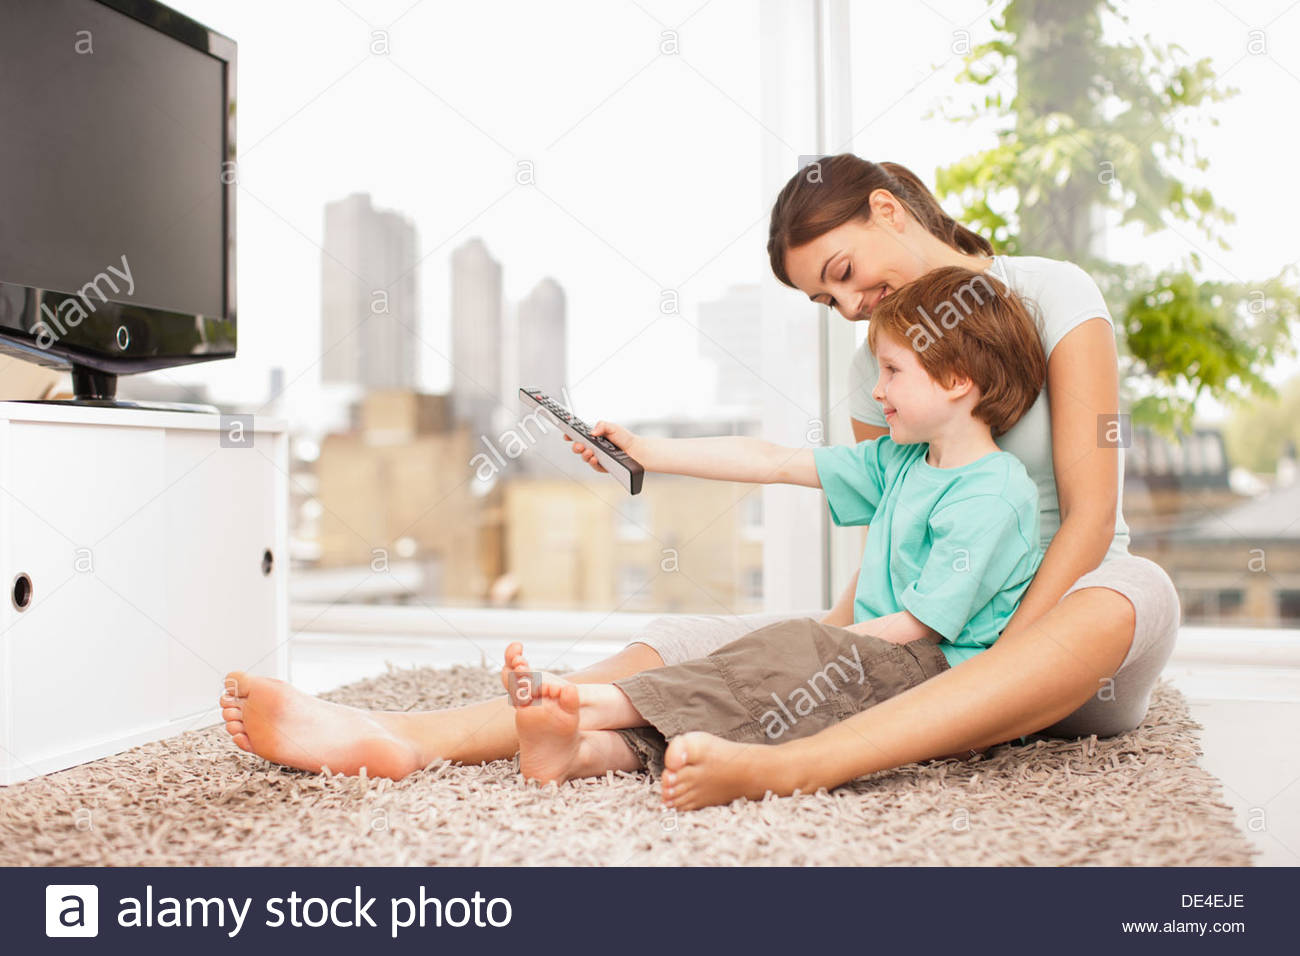 Mother and son watching television - Stock Image